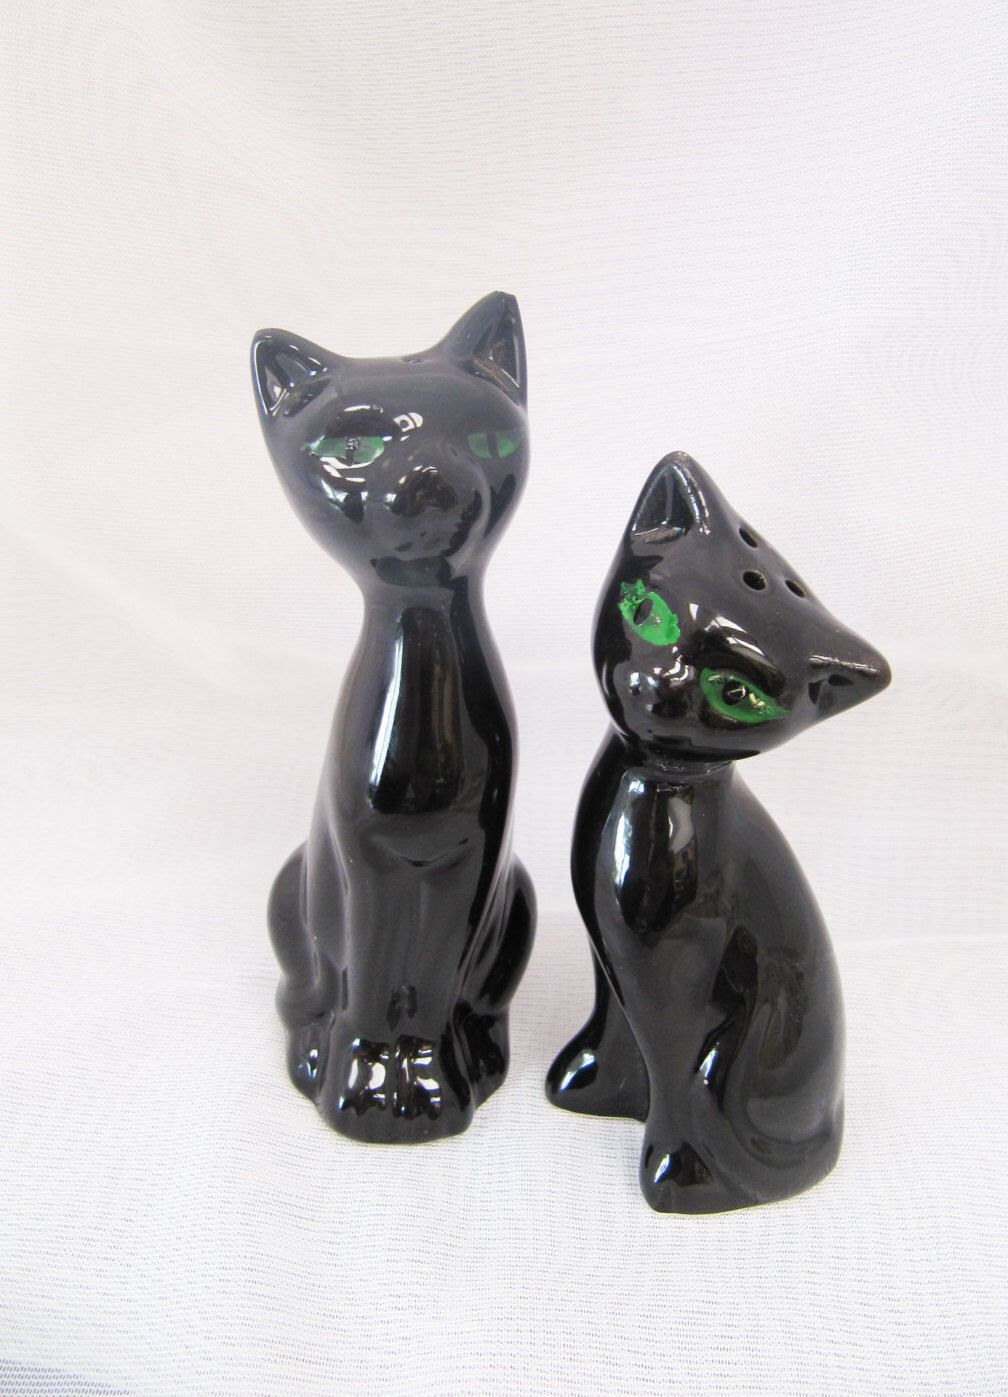 Vintage Pair of Black Cats Salt and Pepper Shakers Green